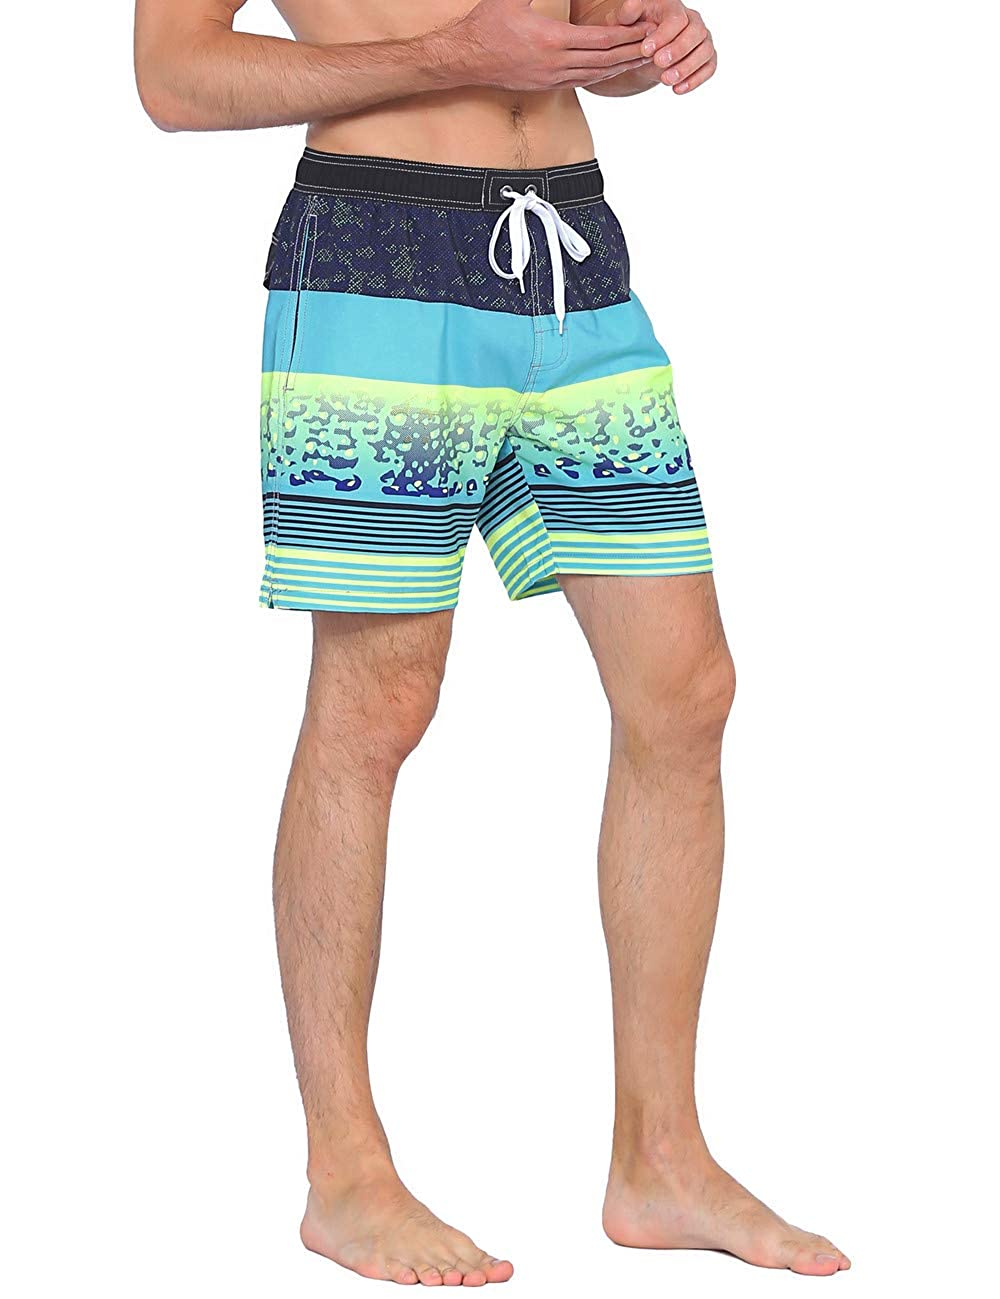 Unitop Mens Swim Trunks Classical Volley Board Shorts Colorful Pattern with Mesh Lining